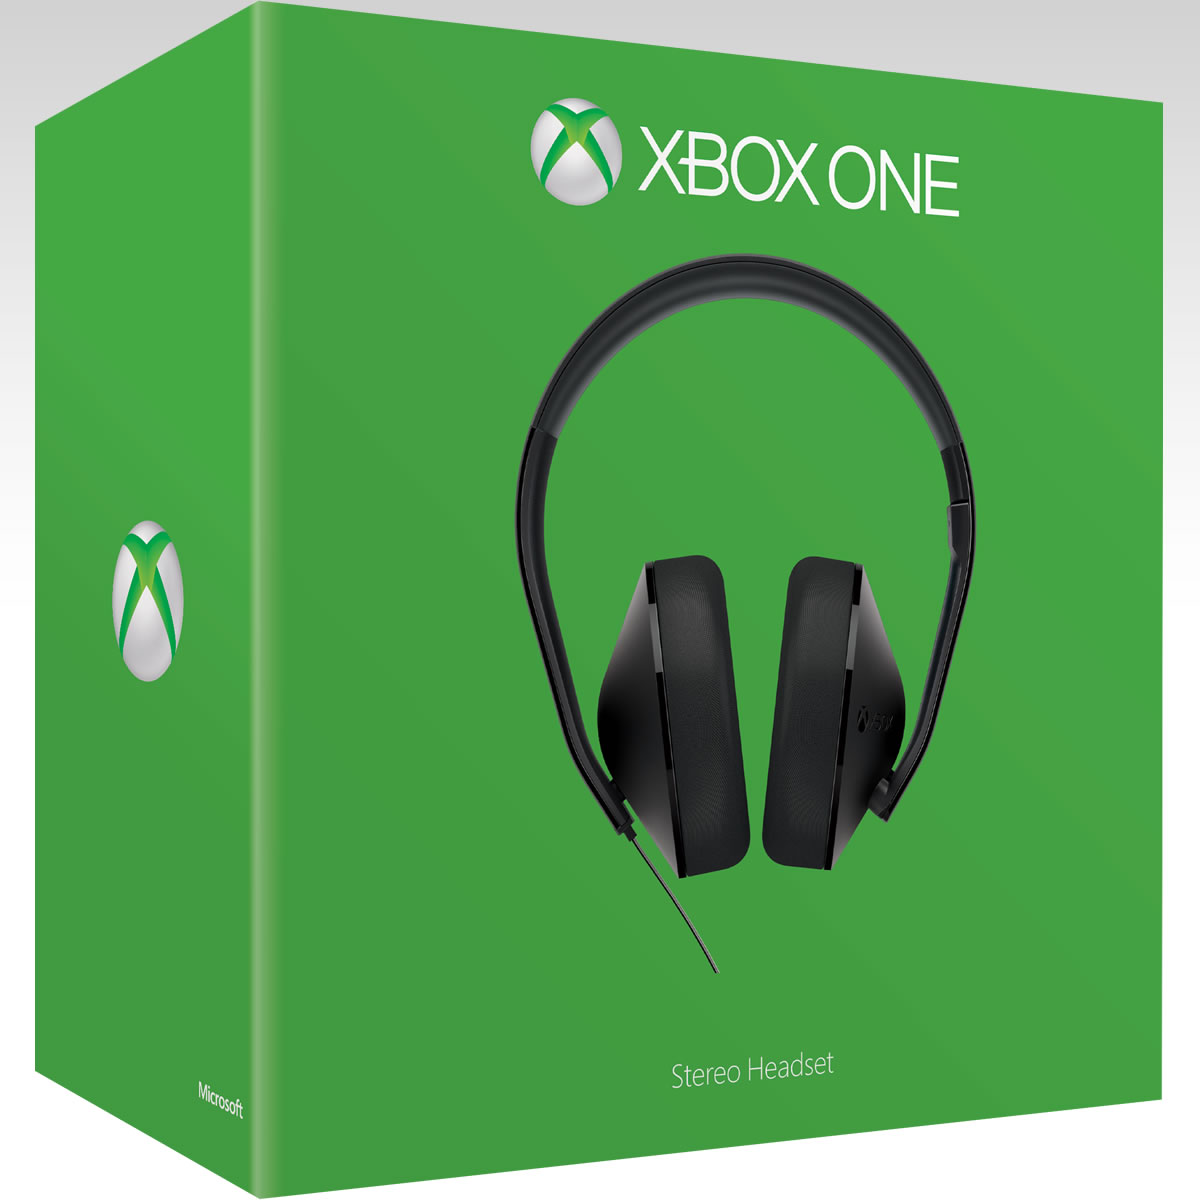 MICROSOFT OFFICIAL XBOX ONE STEREO HEADSET - MICROSOFT ������� XBOX ONE ������������ ��������� (XBOX ONE)